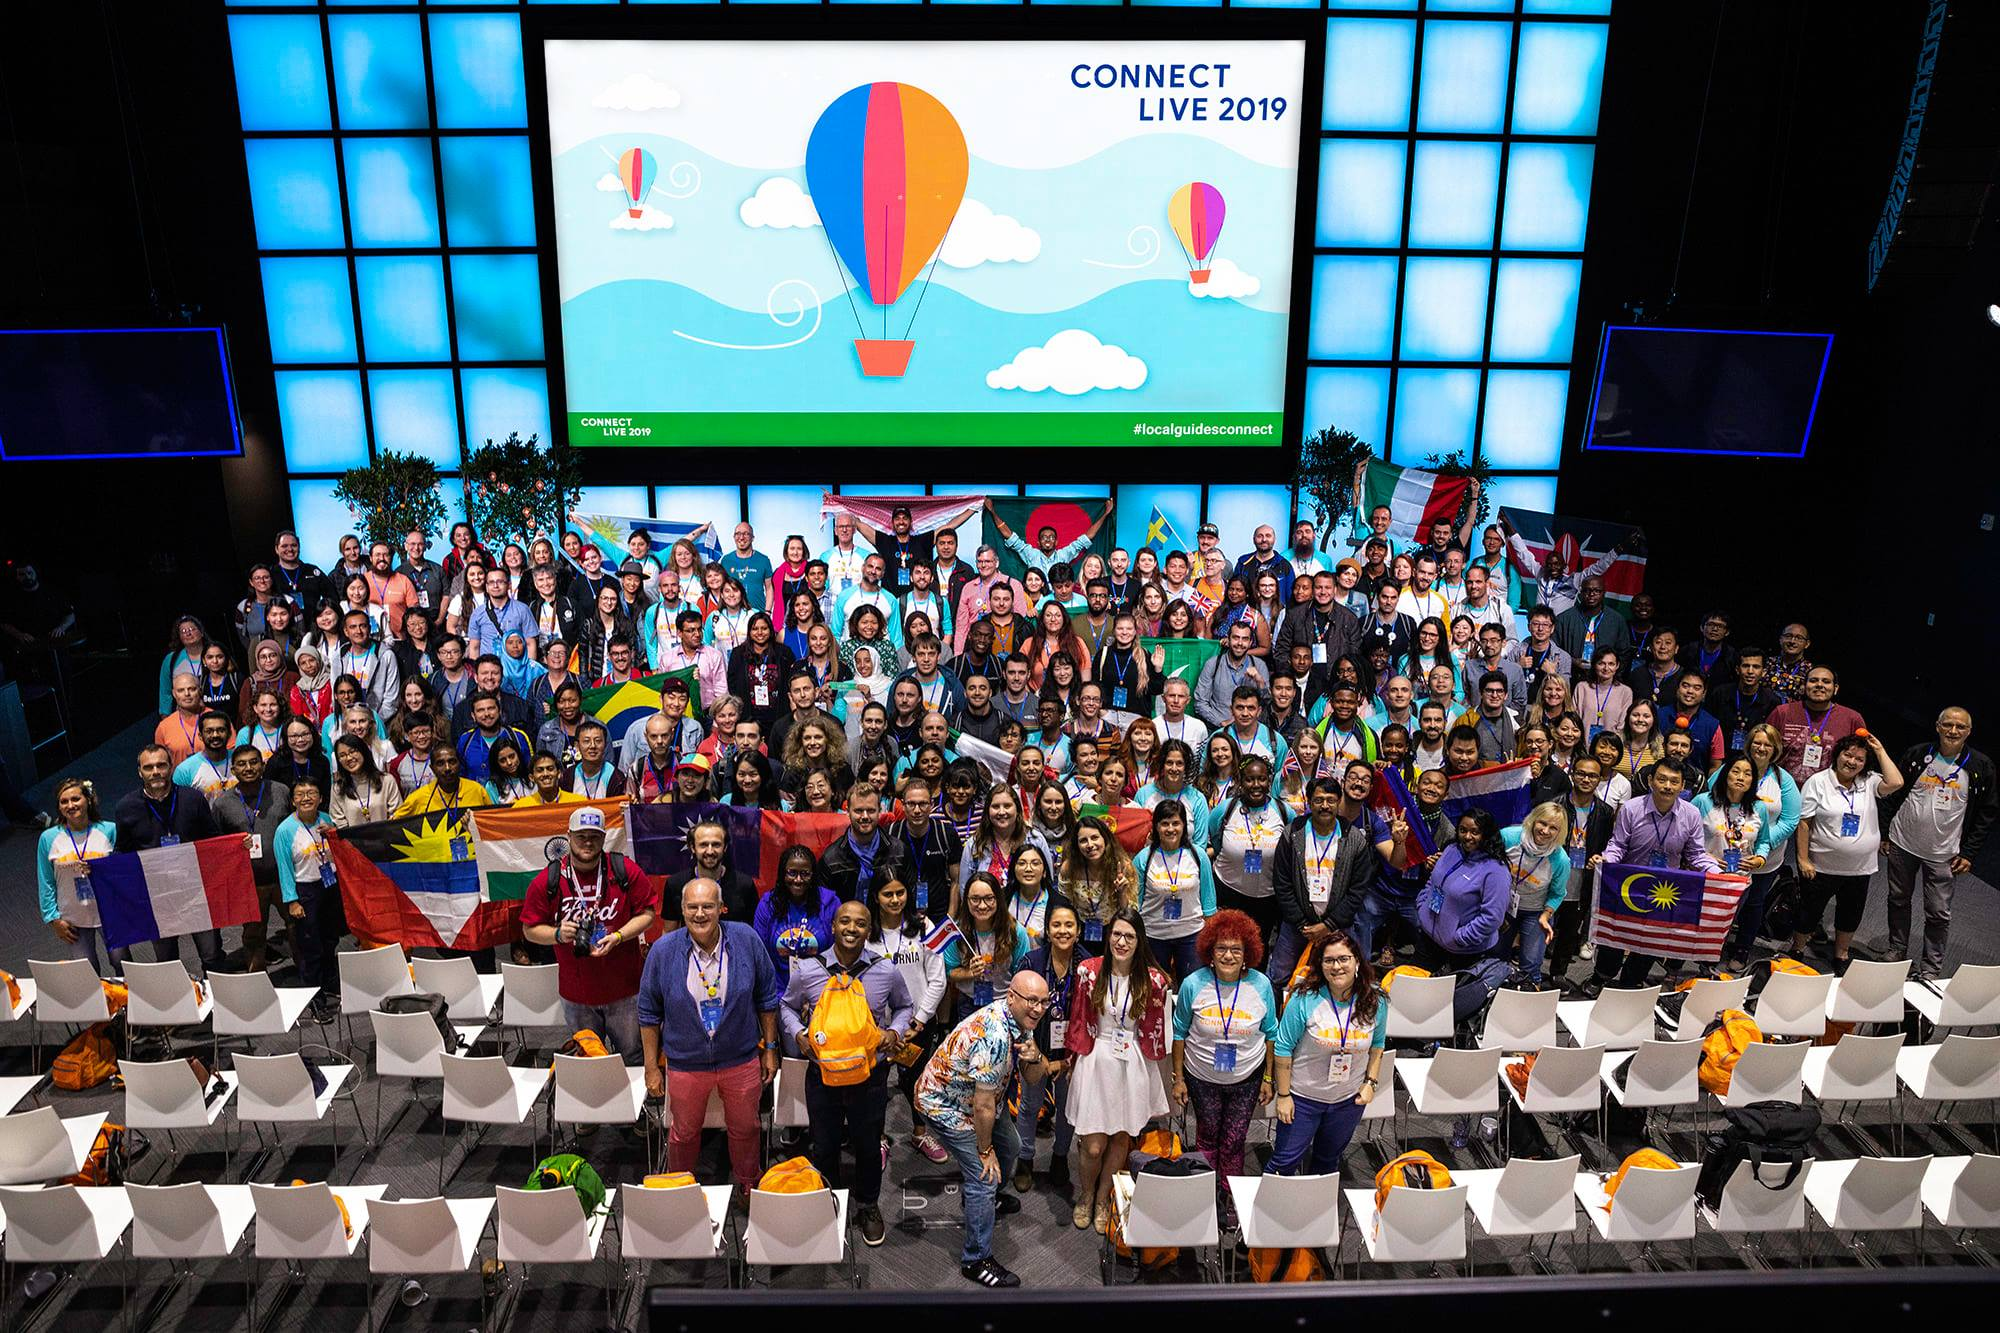 Google Local Guides Connect Live 2019 Summit